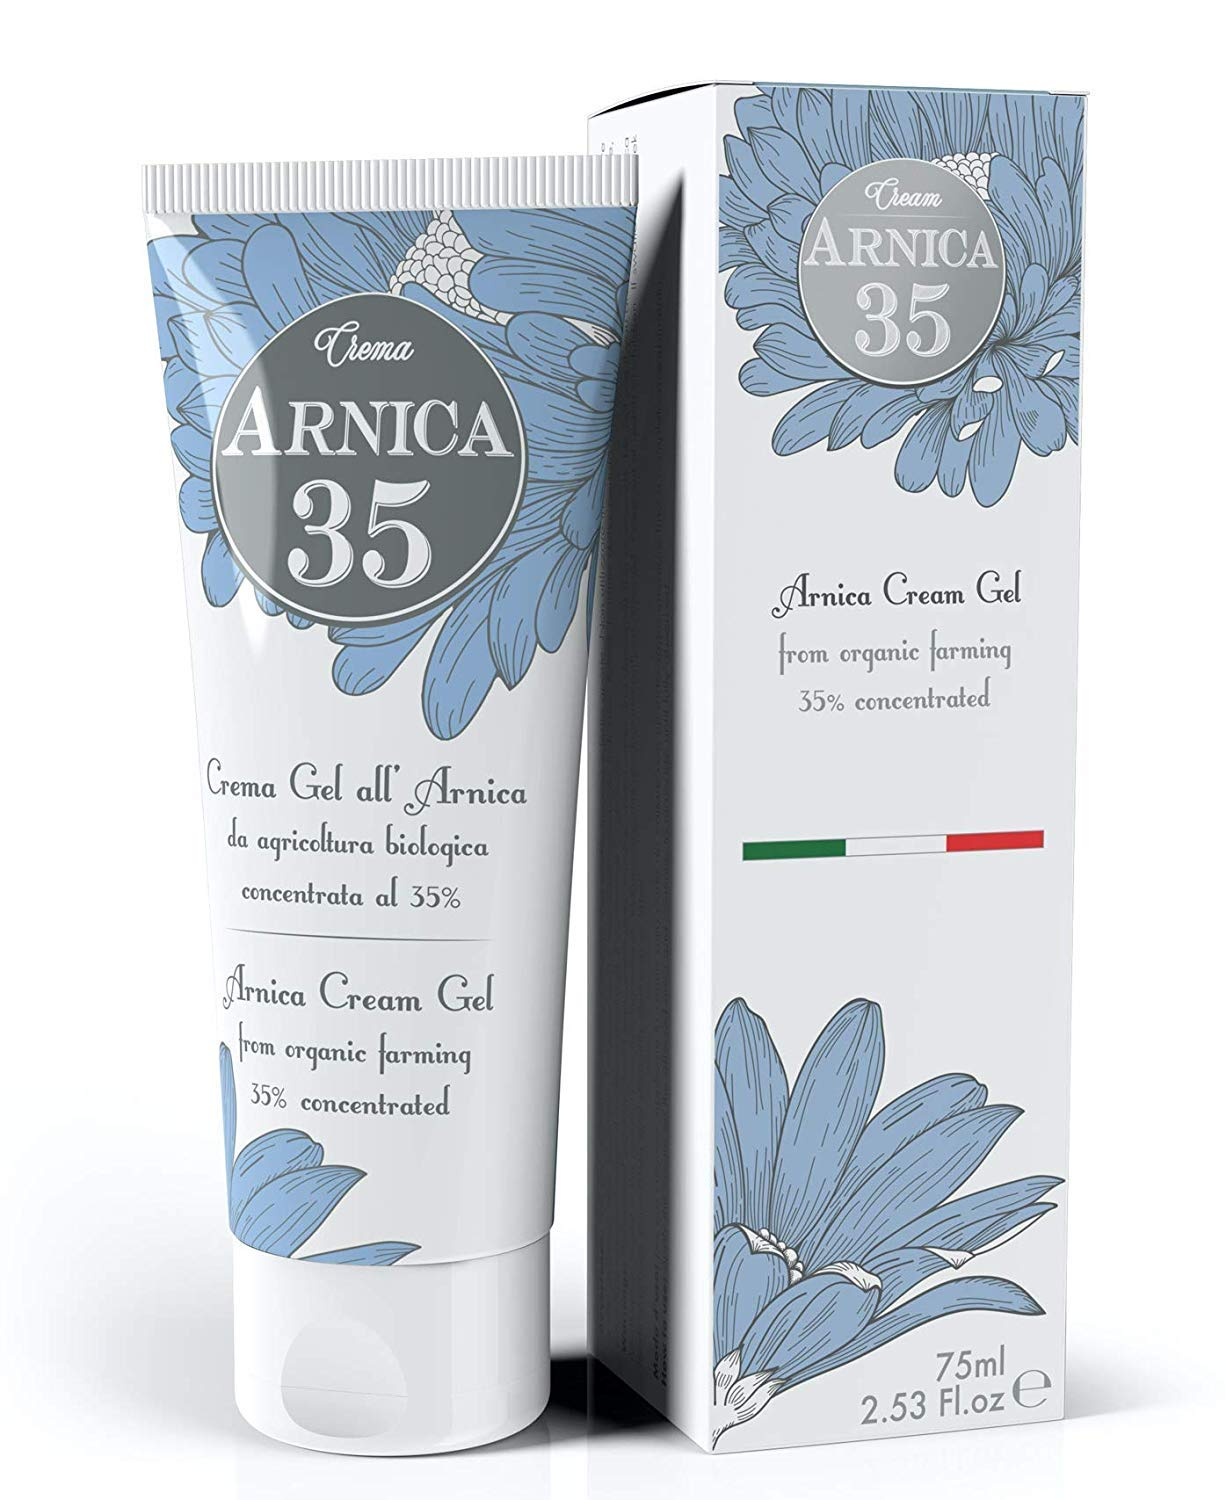 Dulàc - Arnica Gel Cream with a 35% concentration - 2.53 Fl.oz - THE MOST CONCENTRATED - 100% Made in Italy - Arnica 35 : Beauty